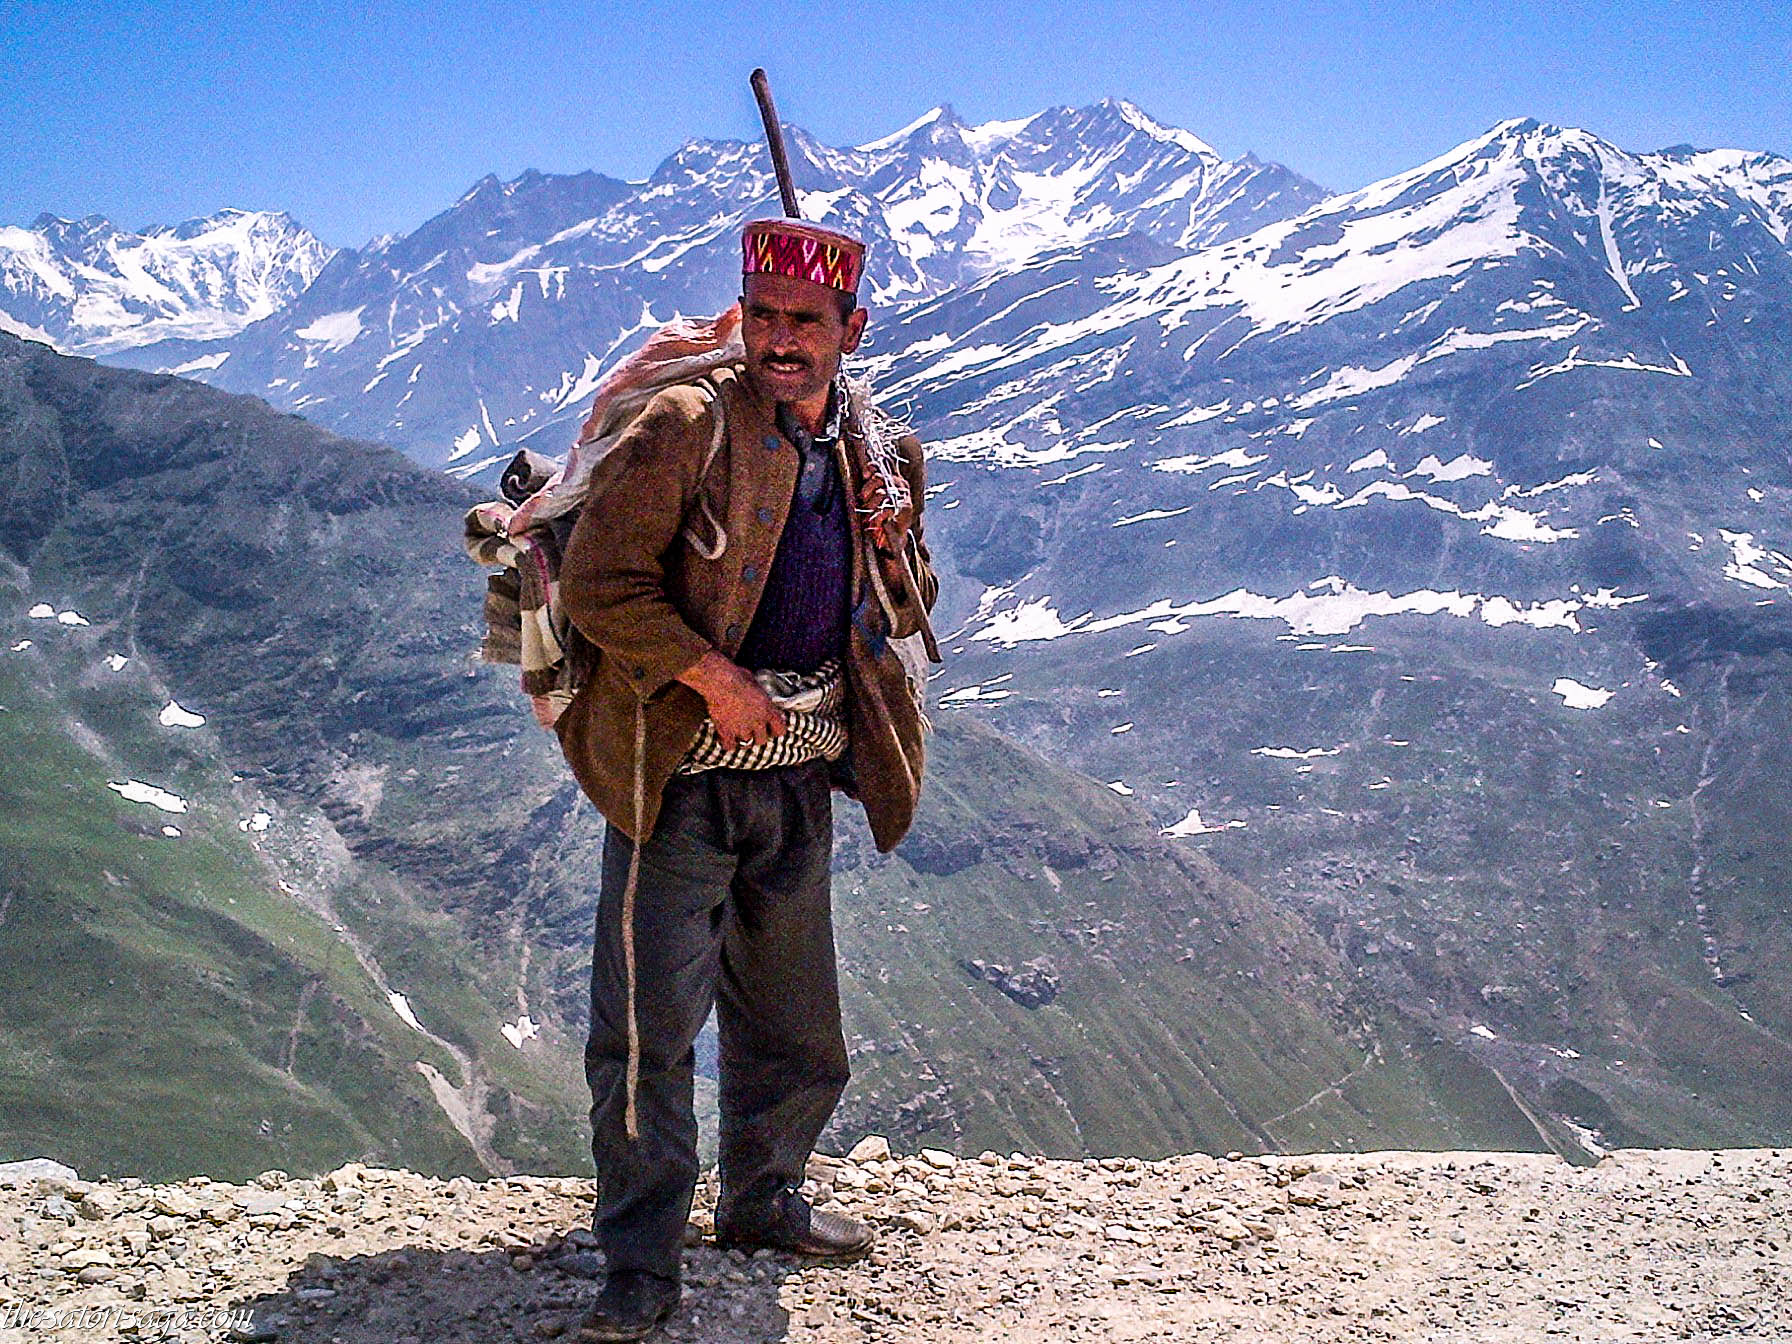 himalayan herders reaction essay The projects to manipulate himalayan water now completed,  work on this  route was recently suspended – in response to  of livestock herders in tibet  have already shrunk quite significantly this is likely to make them shrink faster   (as we will see later, some indian essays published in 2007 already.